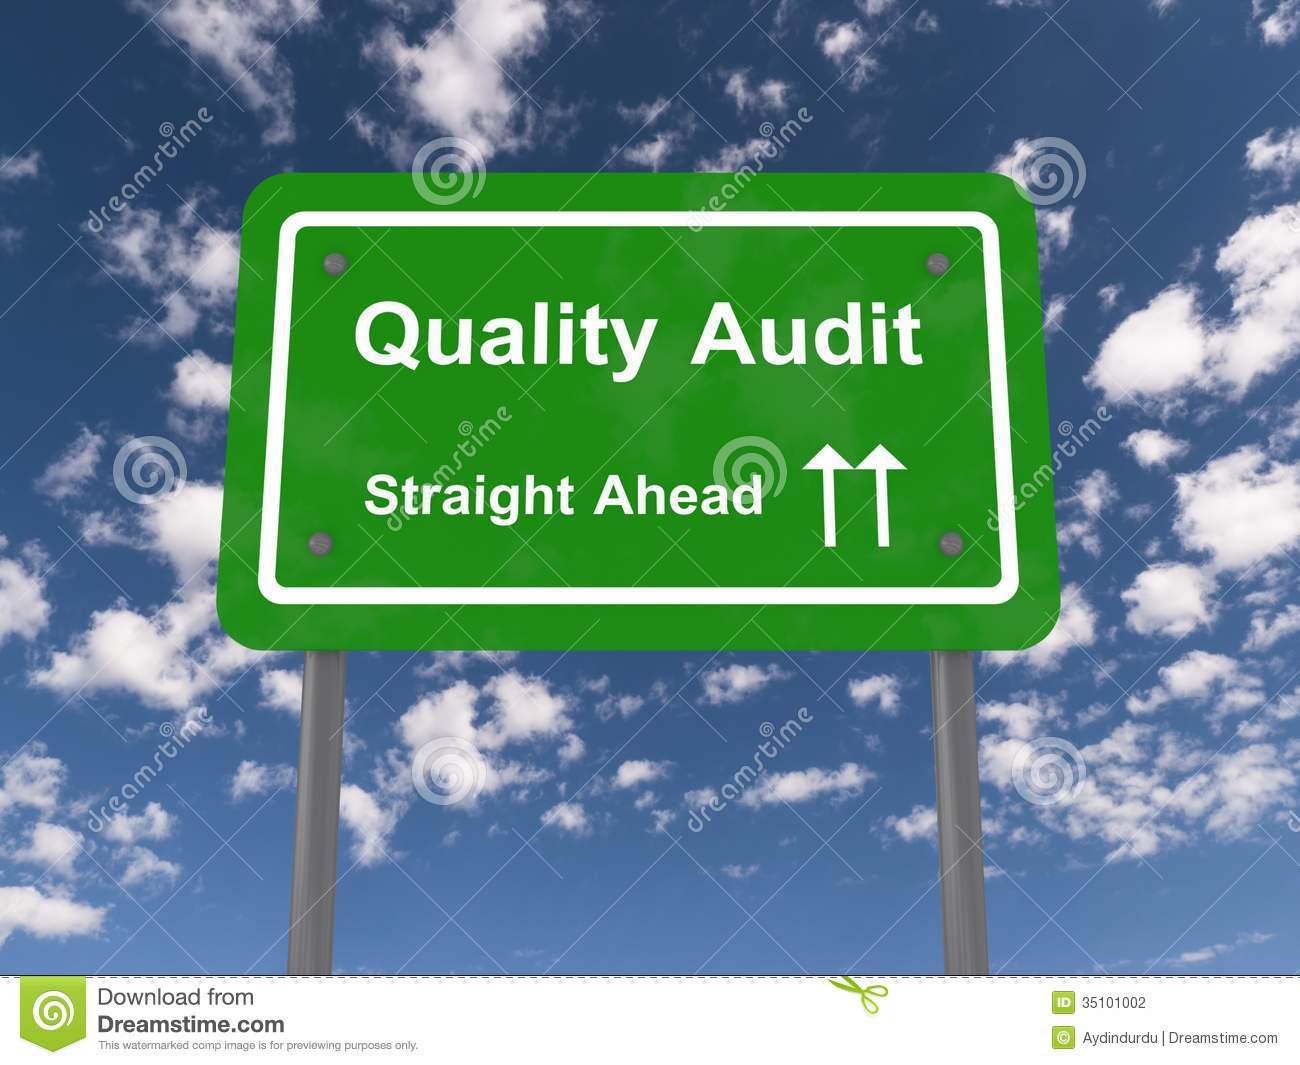 quality-audit-straight-ahead-sign-direct